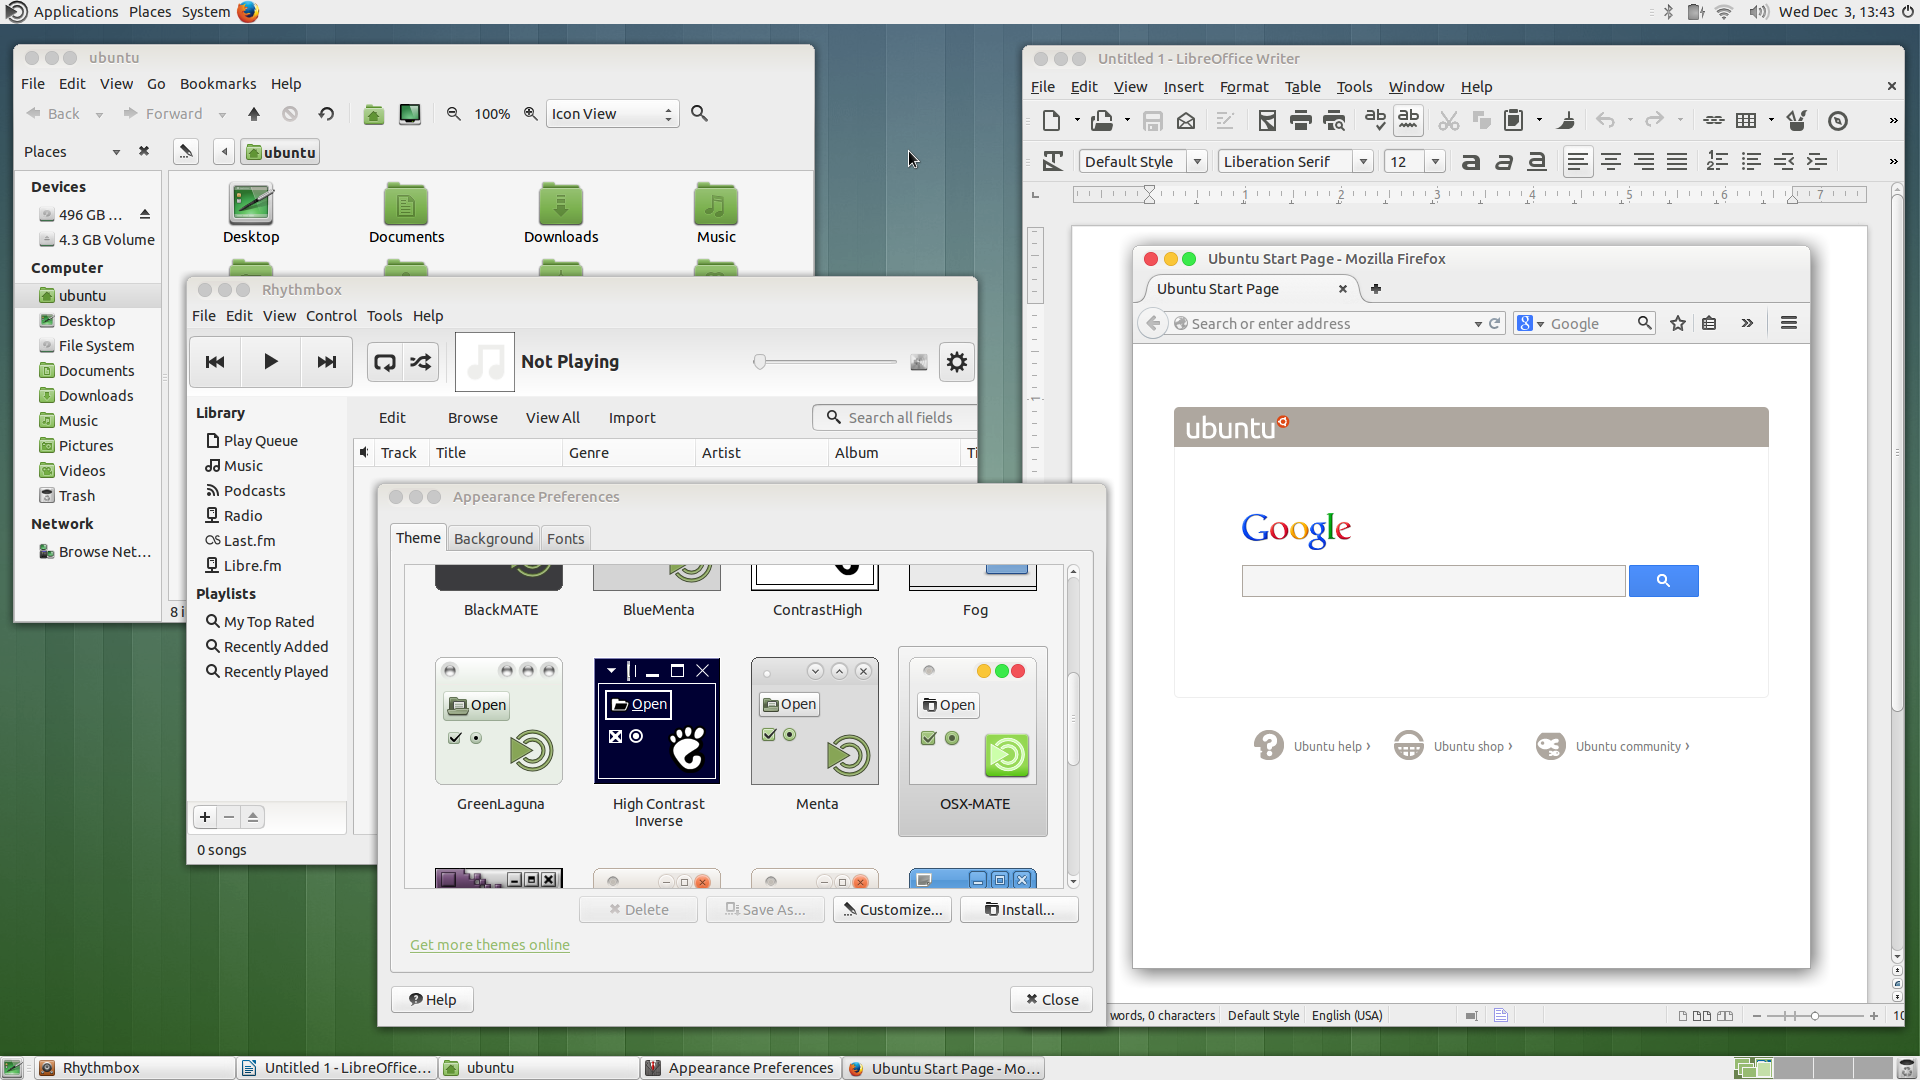 OSX-MATE Theme for Ubuntu MATE - Artwork - Ubuntu MATE Community